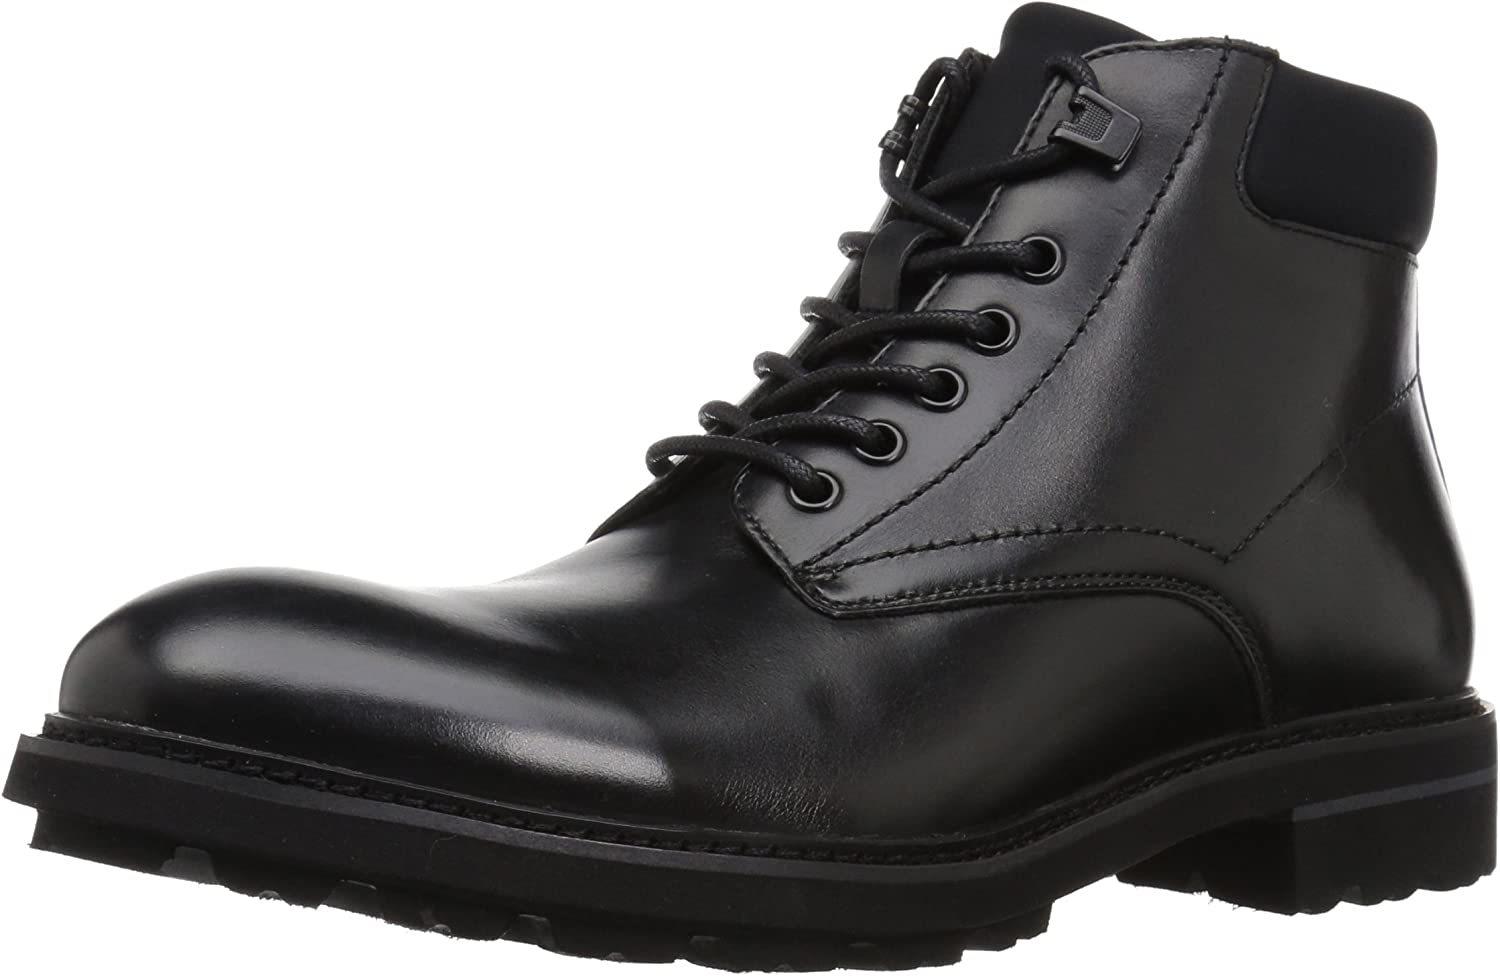 Kenneth Cole New York Men's Design 10445 Combat Boot